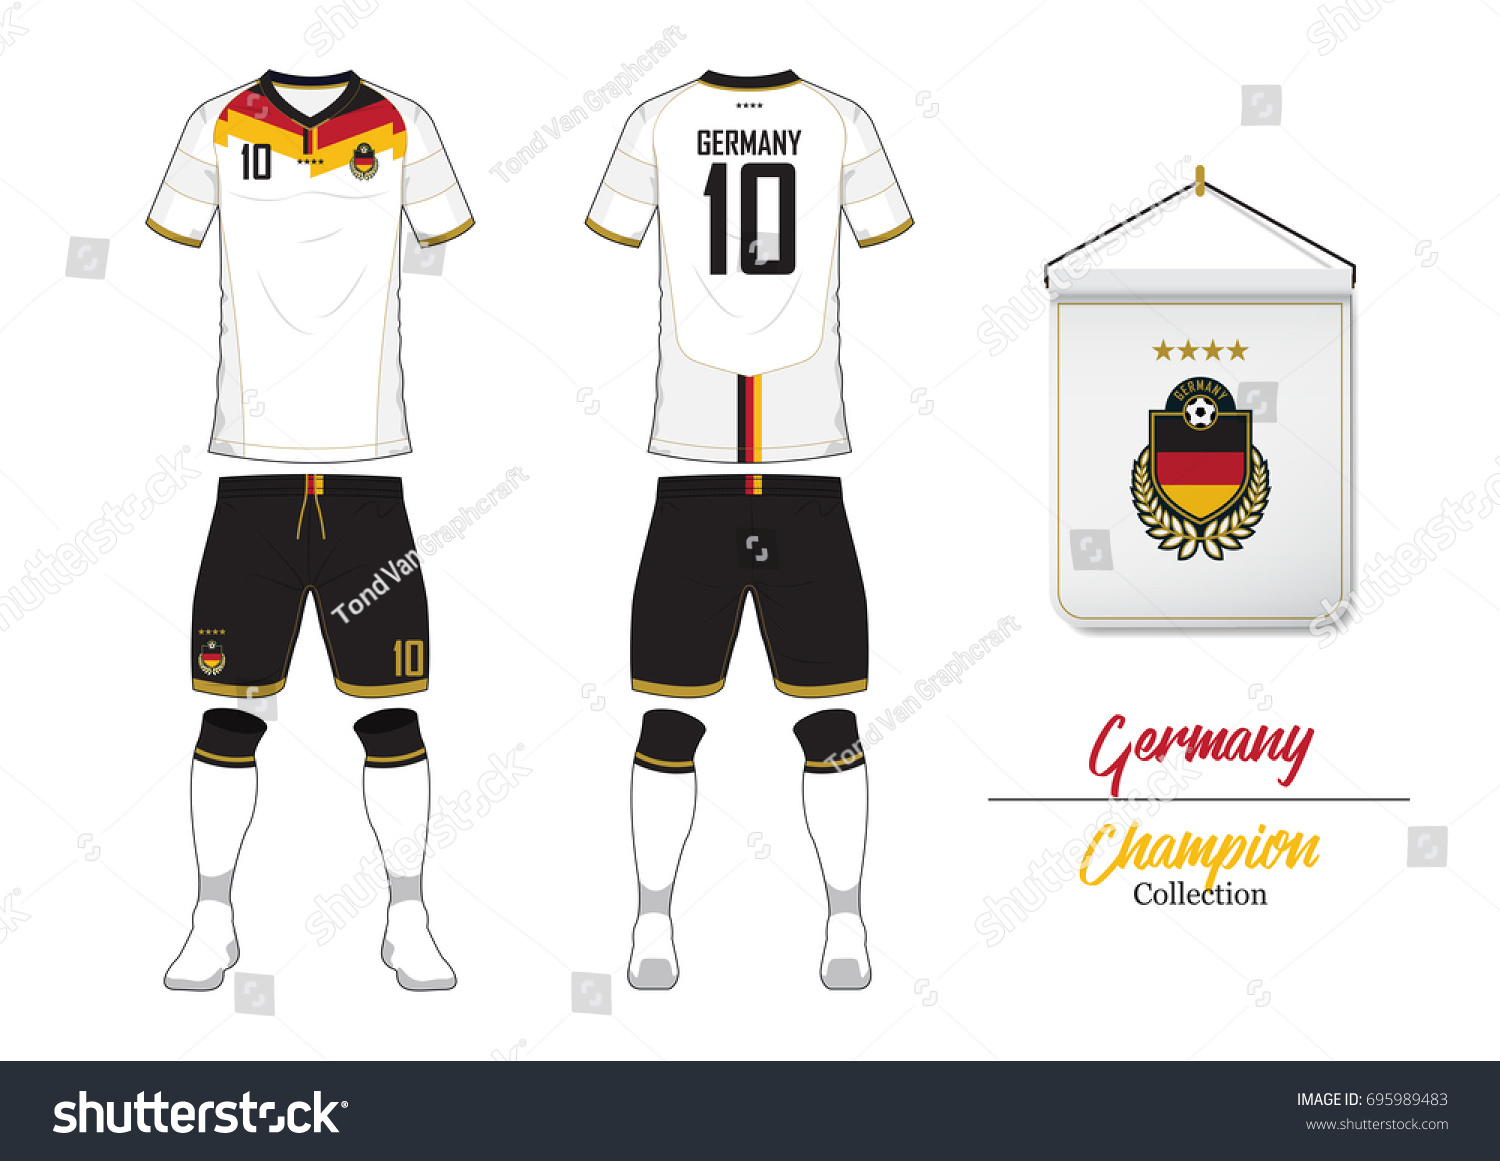 online retailer 7adf7 00dcc Germany National Football Team T Shirts - DREAMWORKS